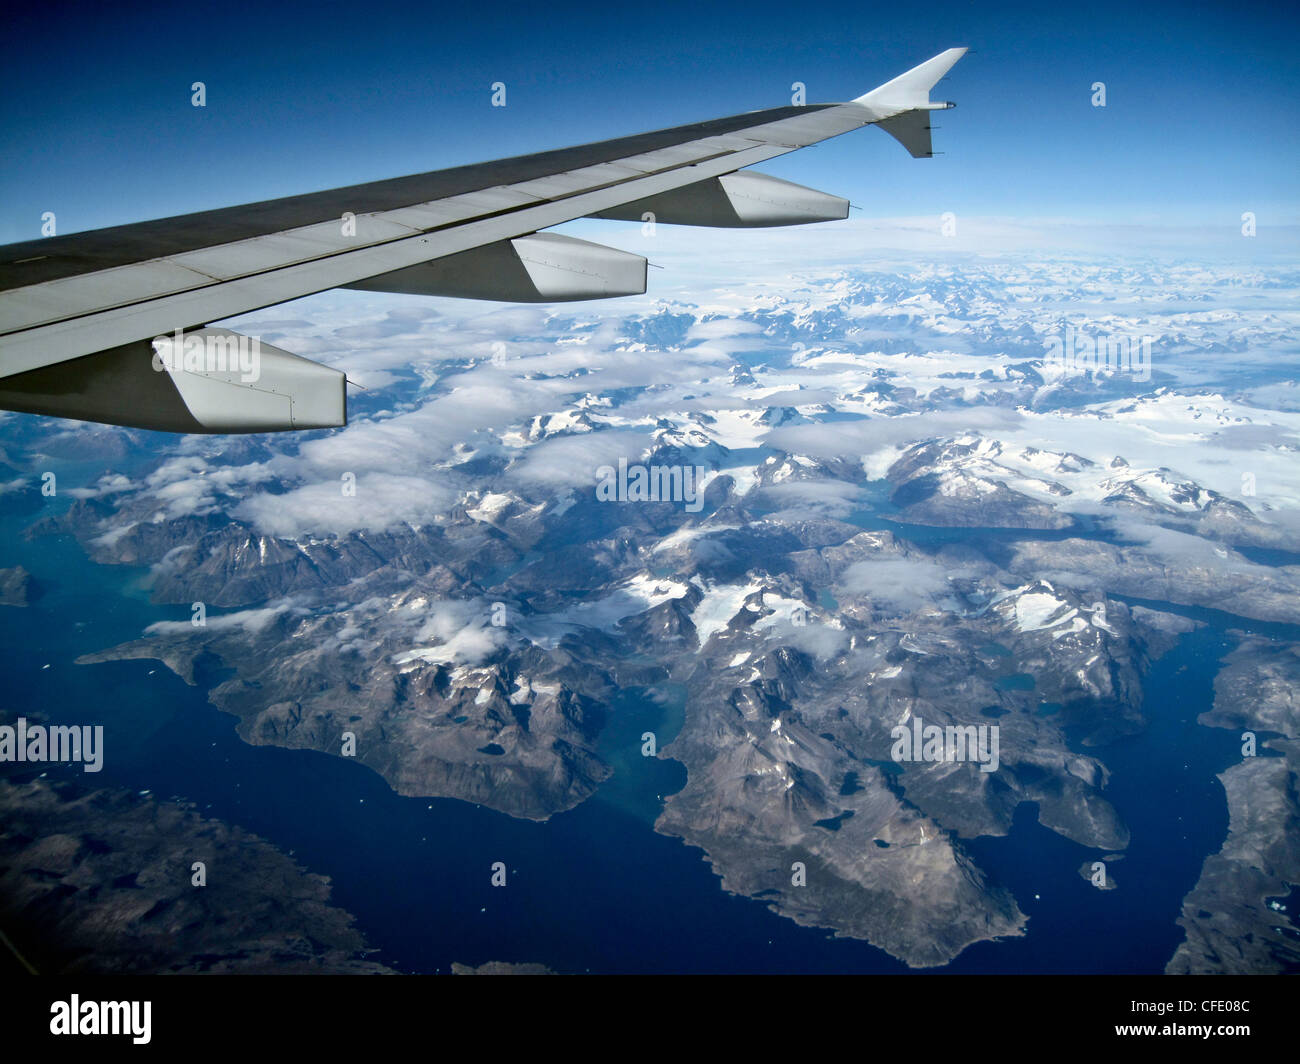 View from a window of an Airbus 320 Commercial Airliner Wing over Greenland - Stock Image